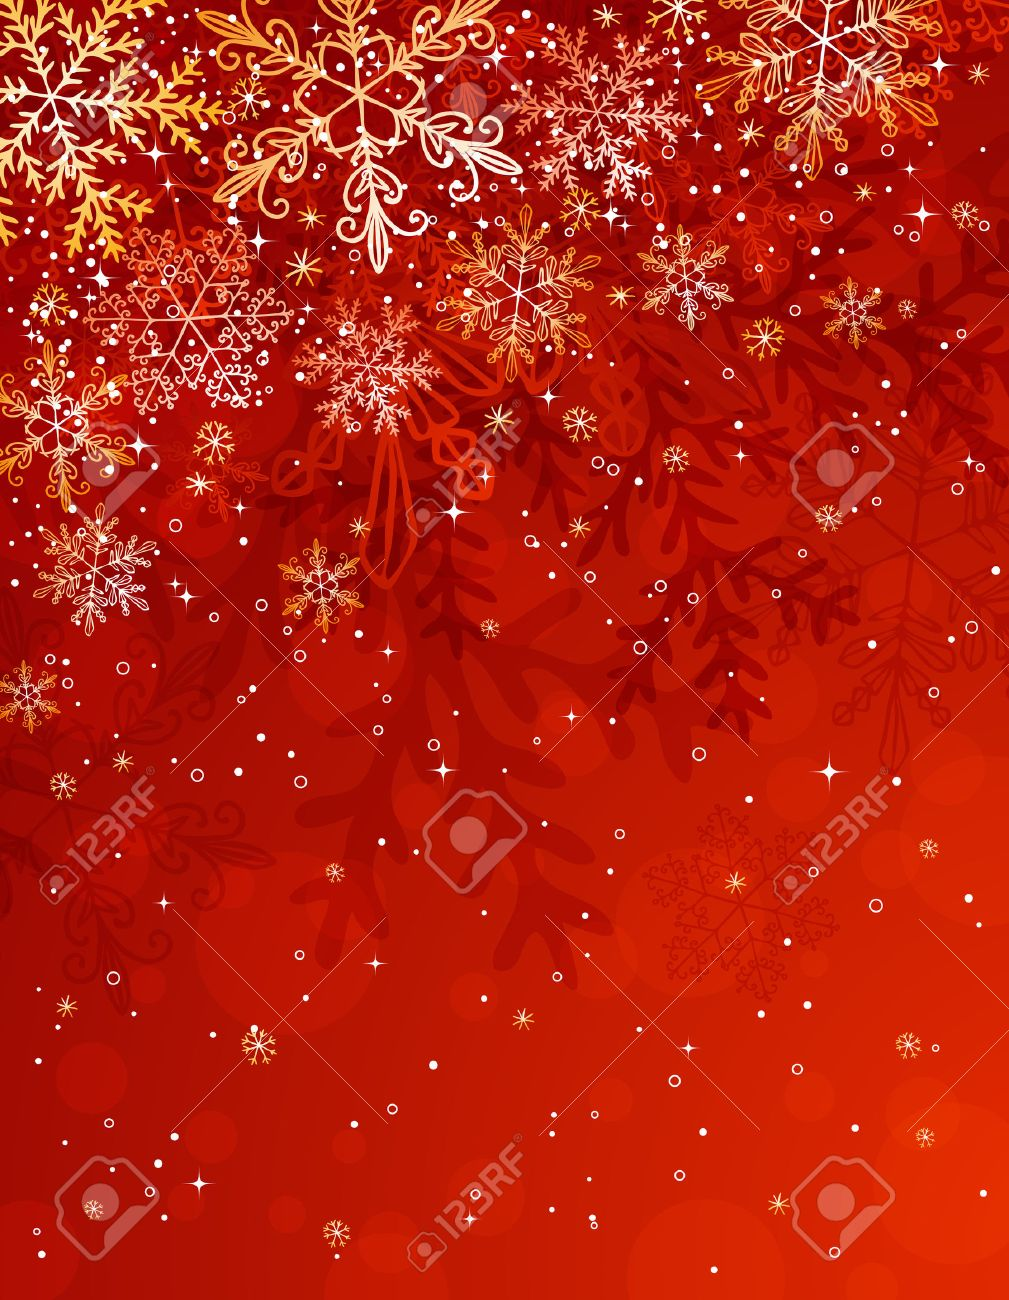 Red Christmas Background With Snowflakes, Illustration Royalty ...